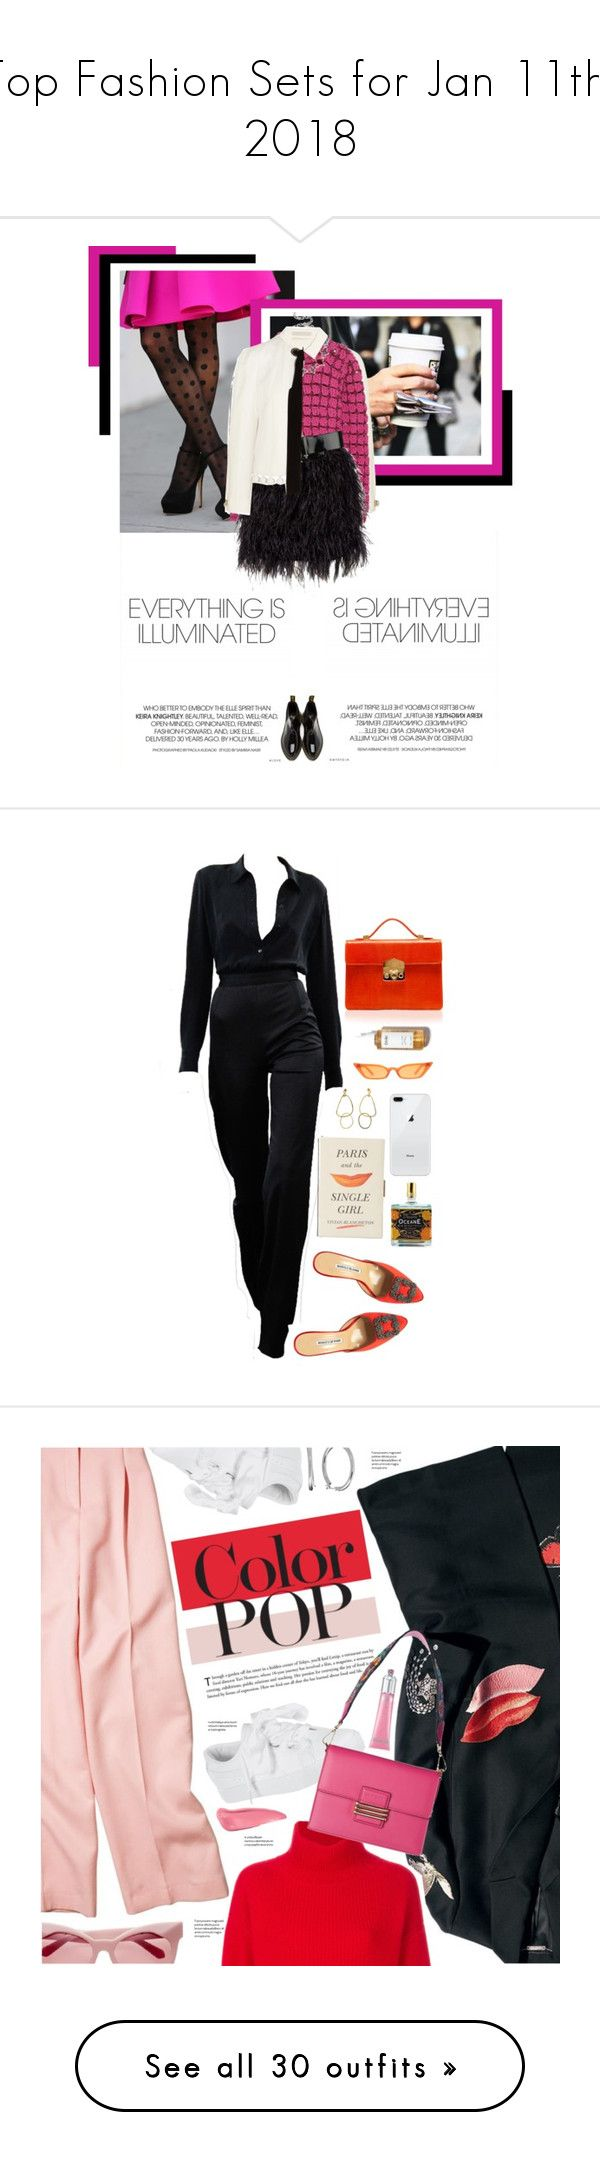 """""""Top Fashion Sets for Jan 11th, 2018"""" by polyvore ❤ liked on Polyvore featuring Theory, Proenza Schouler, Marc Jacobs, DANNIJO, Jason Wu, Dr. Martens, Manolo Blahnik, Rubeus, Kate Spade and Outremer"""